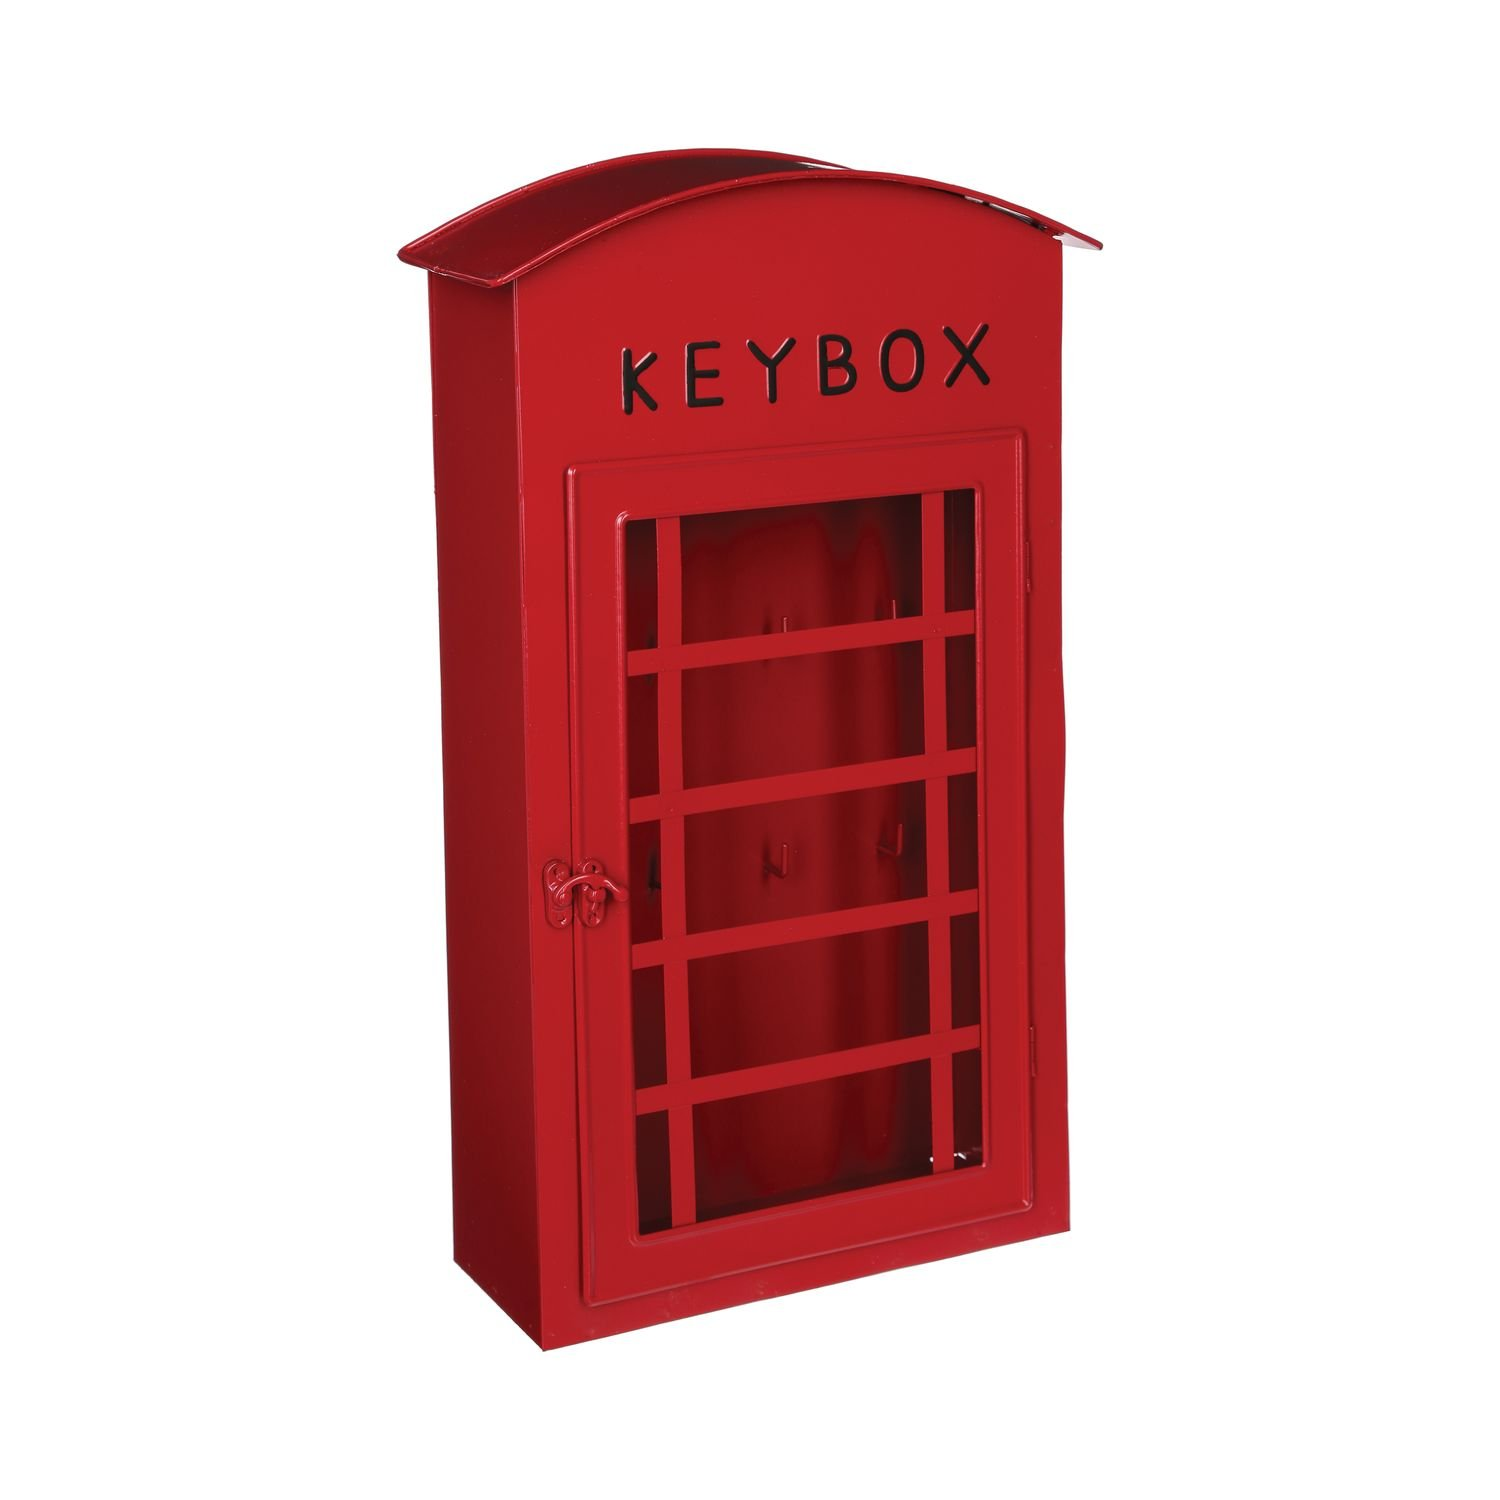 Key box - Old British telephone booth - Colour RED ATMOSPHERA 4BCLE/LONDON